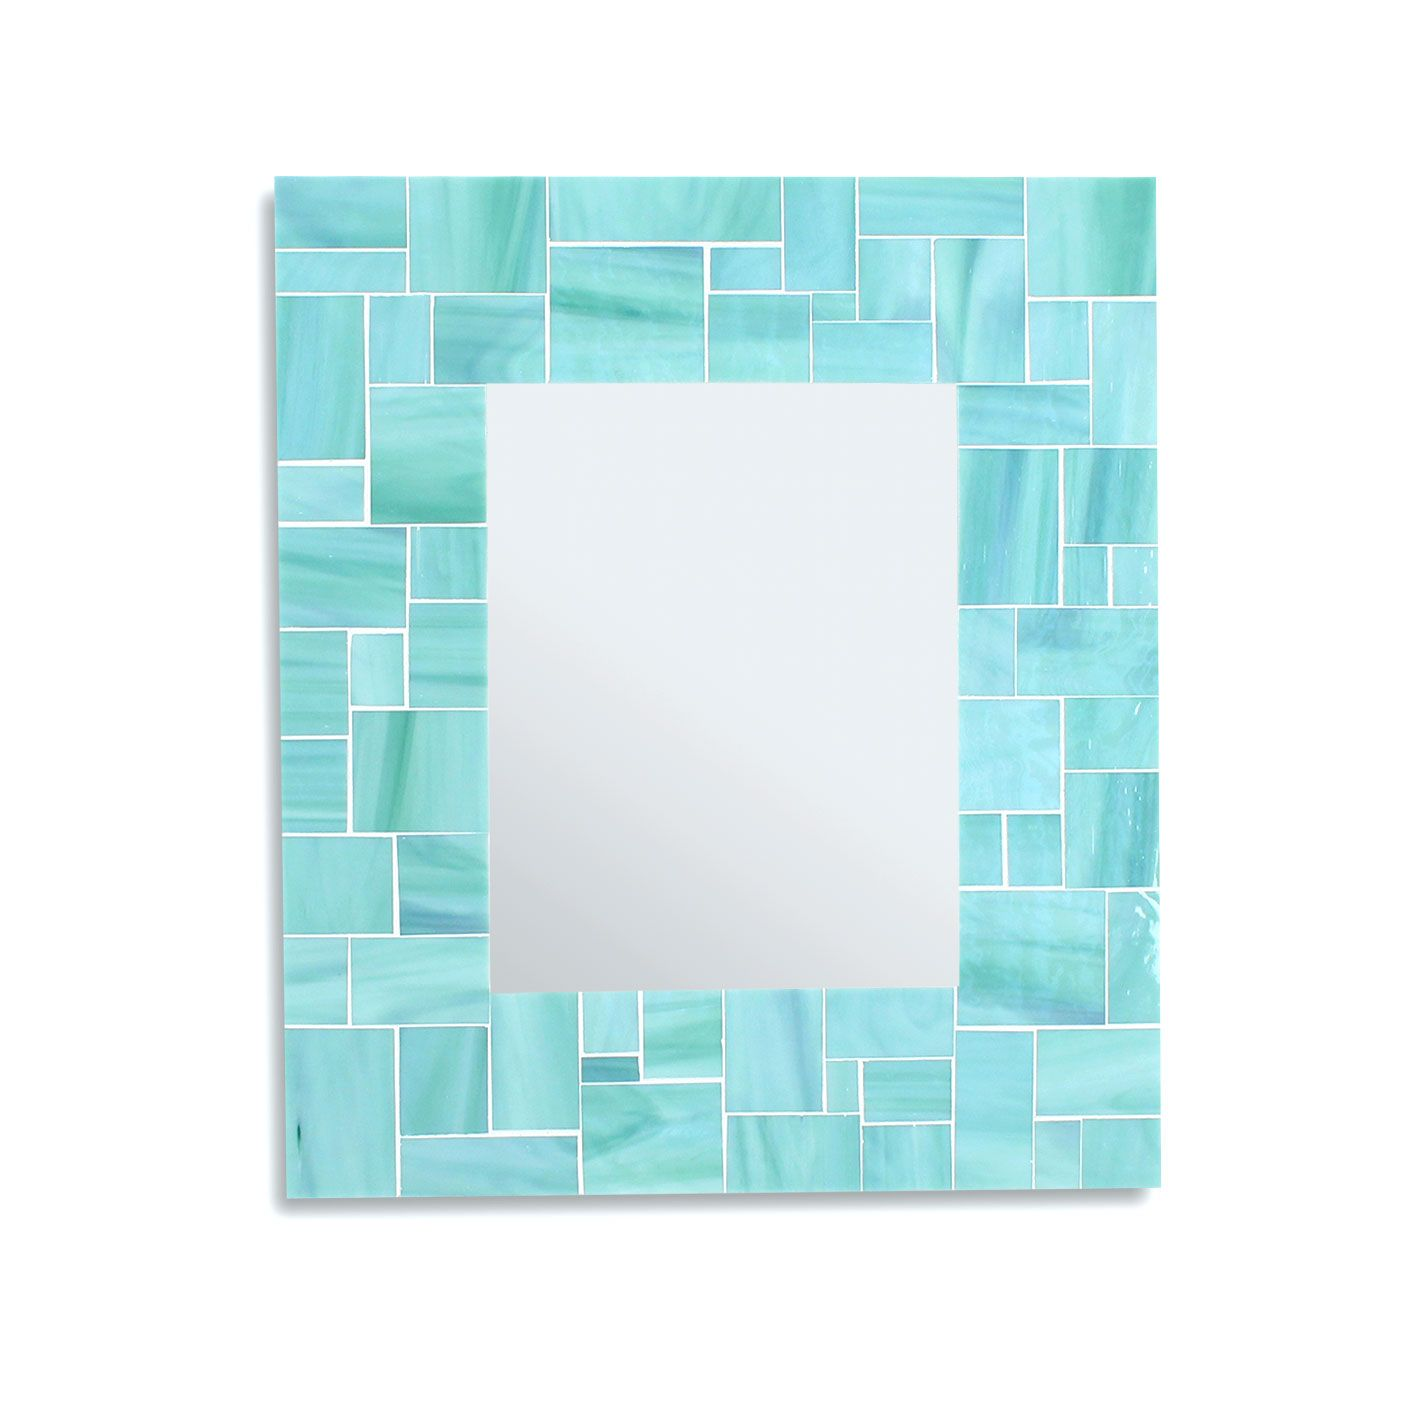 Buy Hand Crafted Decorative Sea Green Mosaic Bathroom Wall Mirror In Stained Glass Tiles Made